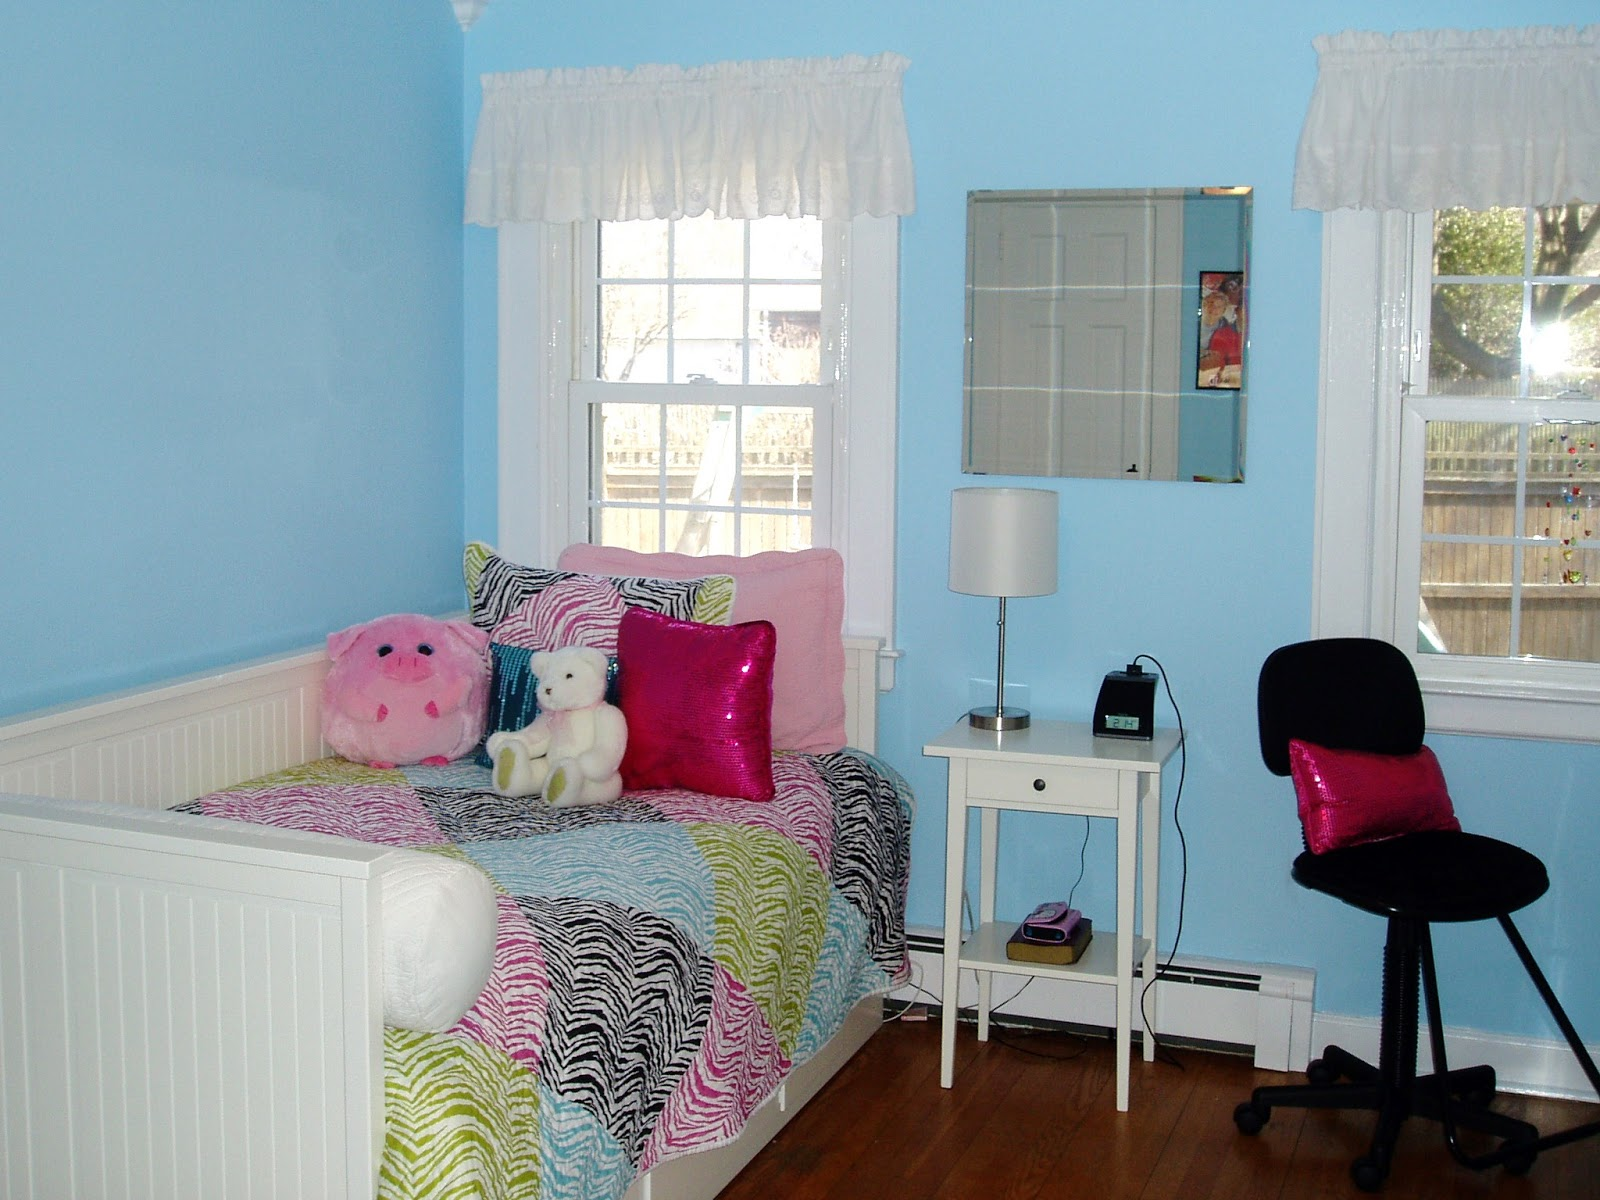 Blue bedroom with rainbow zebra quilt